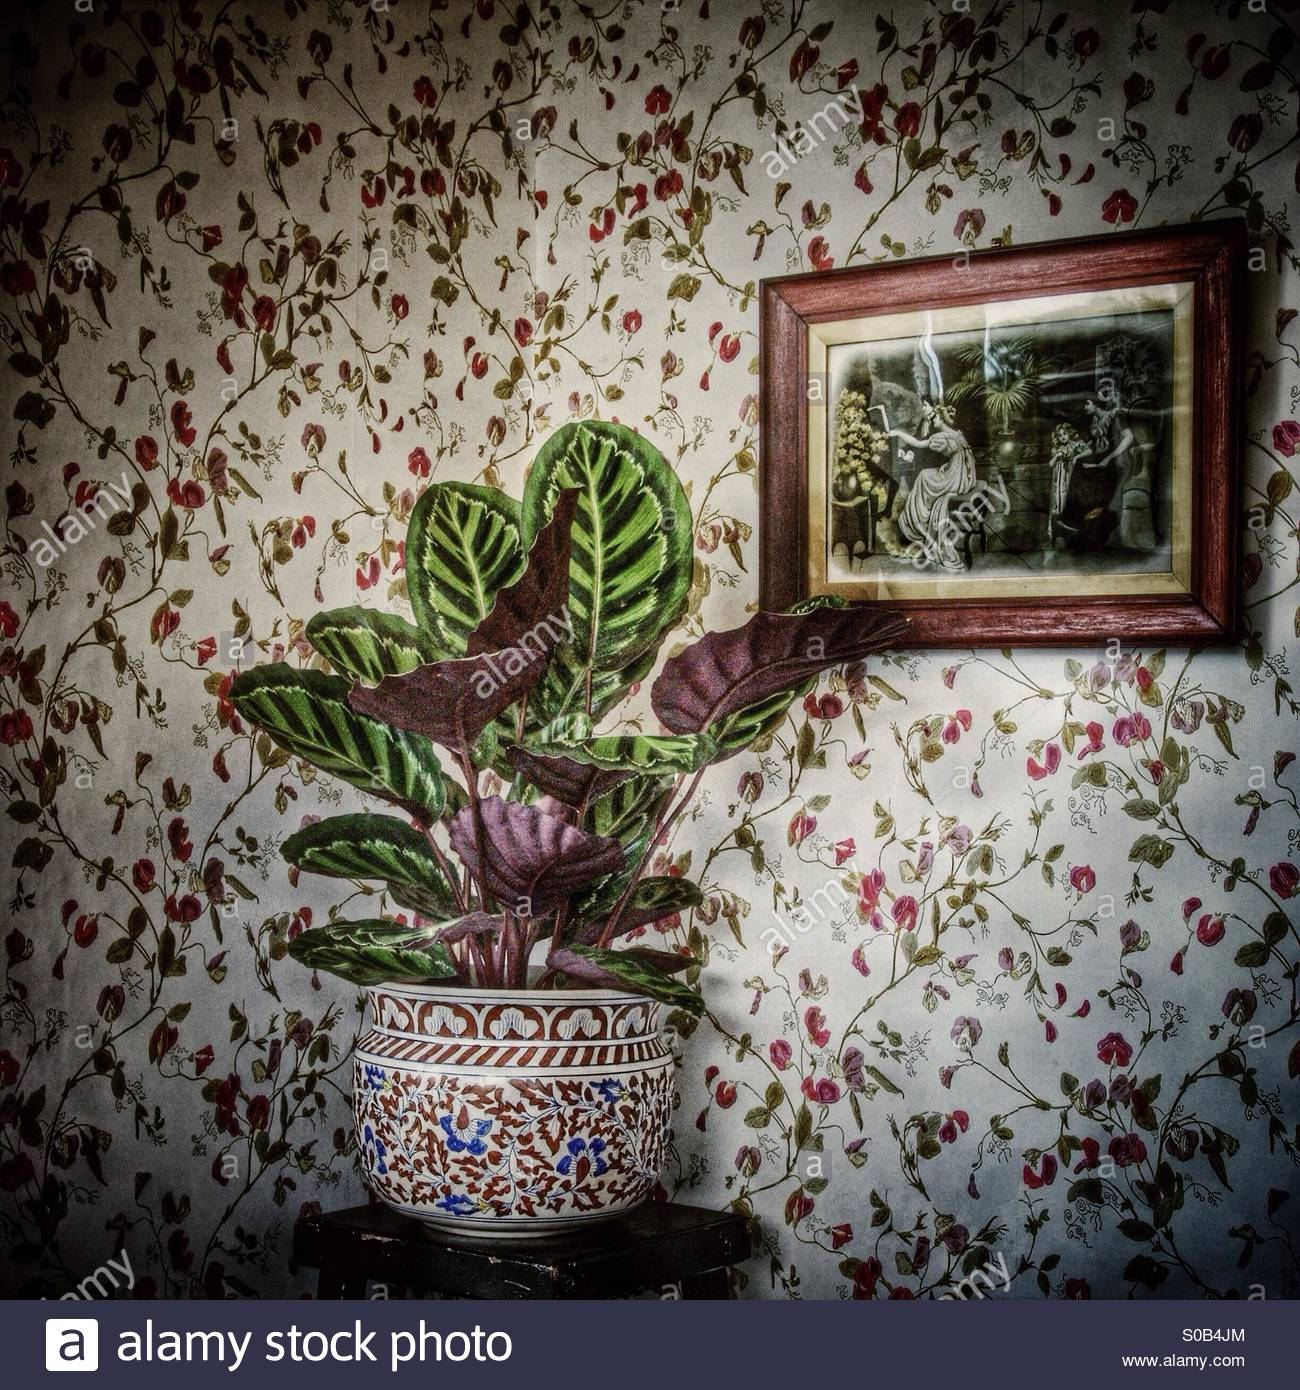 Nostalgia. A pot plant against old fashioned wallpaper with a framed vintage print on the wall. - Stock Image